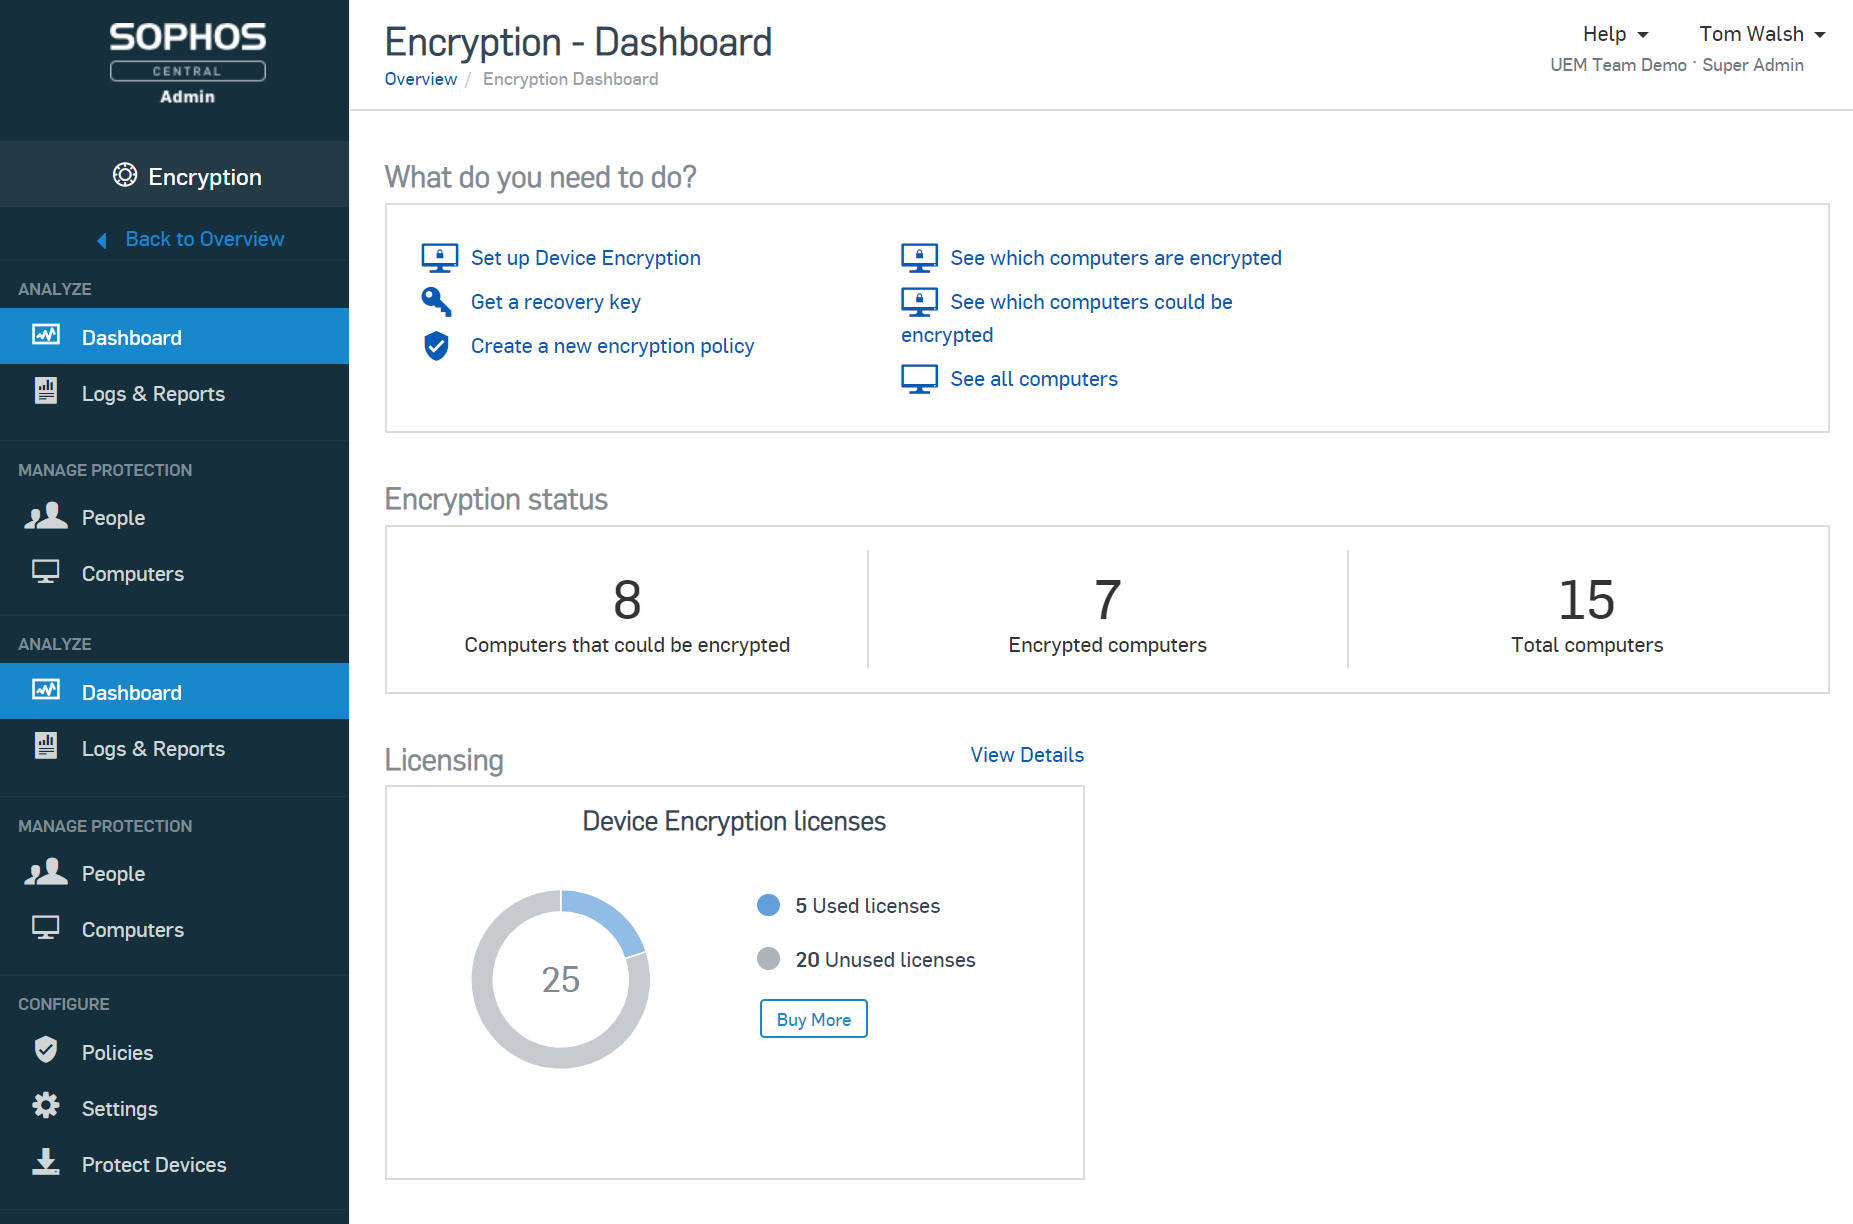 Encryption Dashboard